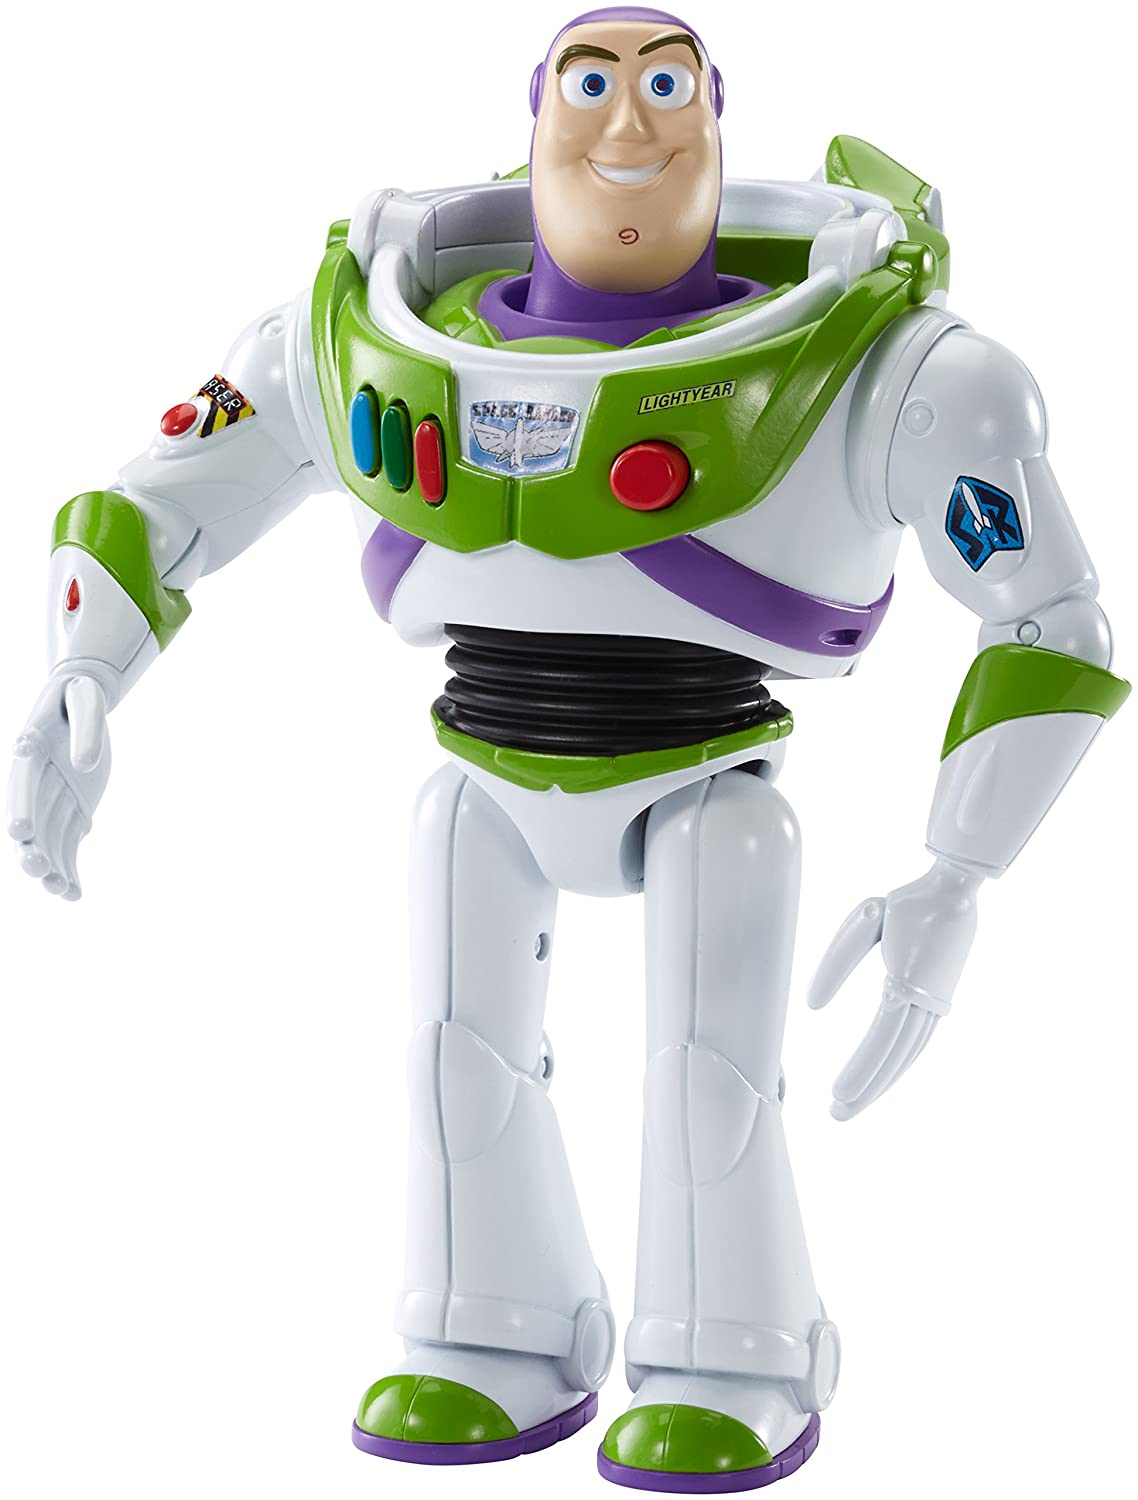 Mattel Disney/Pixar Toy Story Talking Buzz Figure DPB98